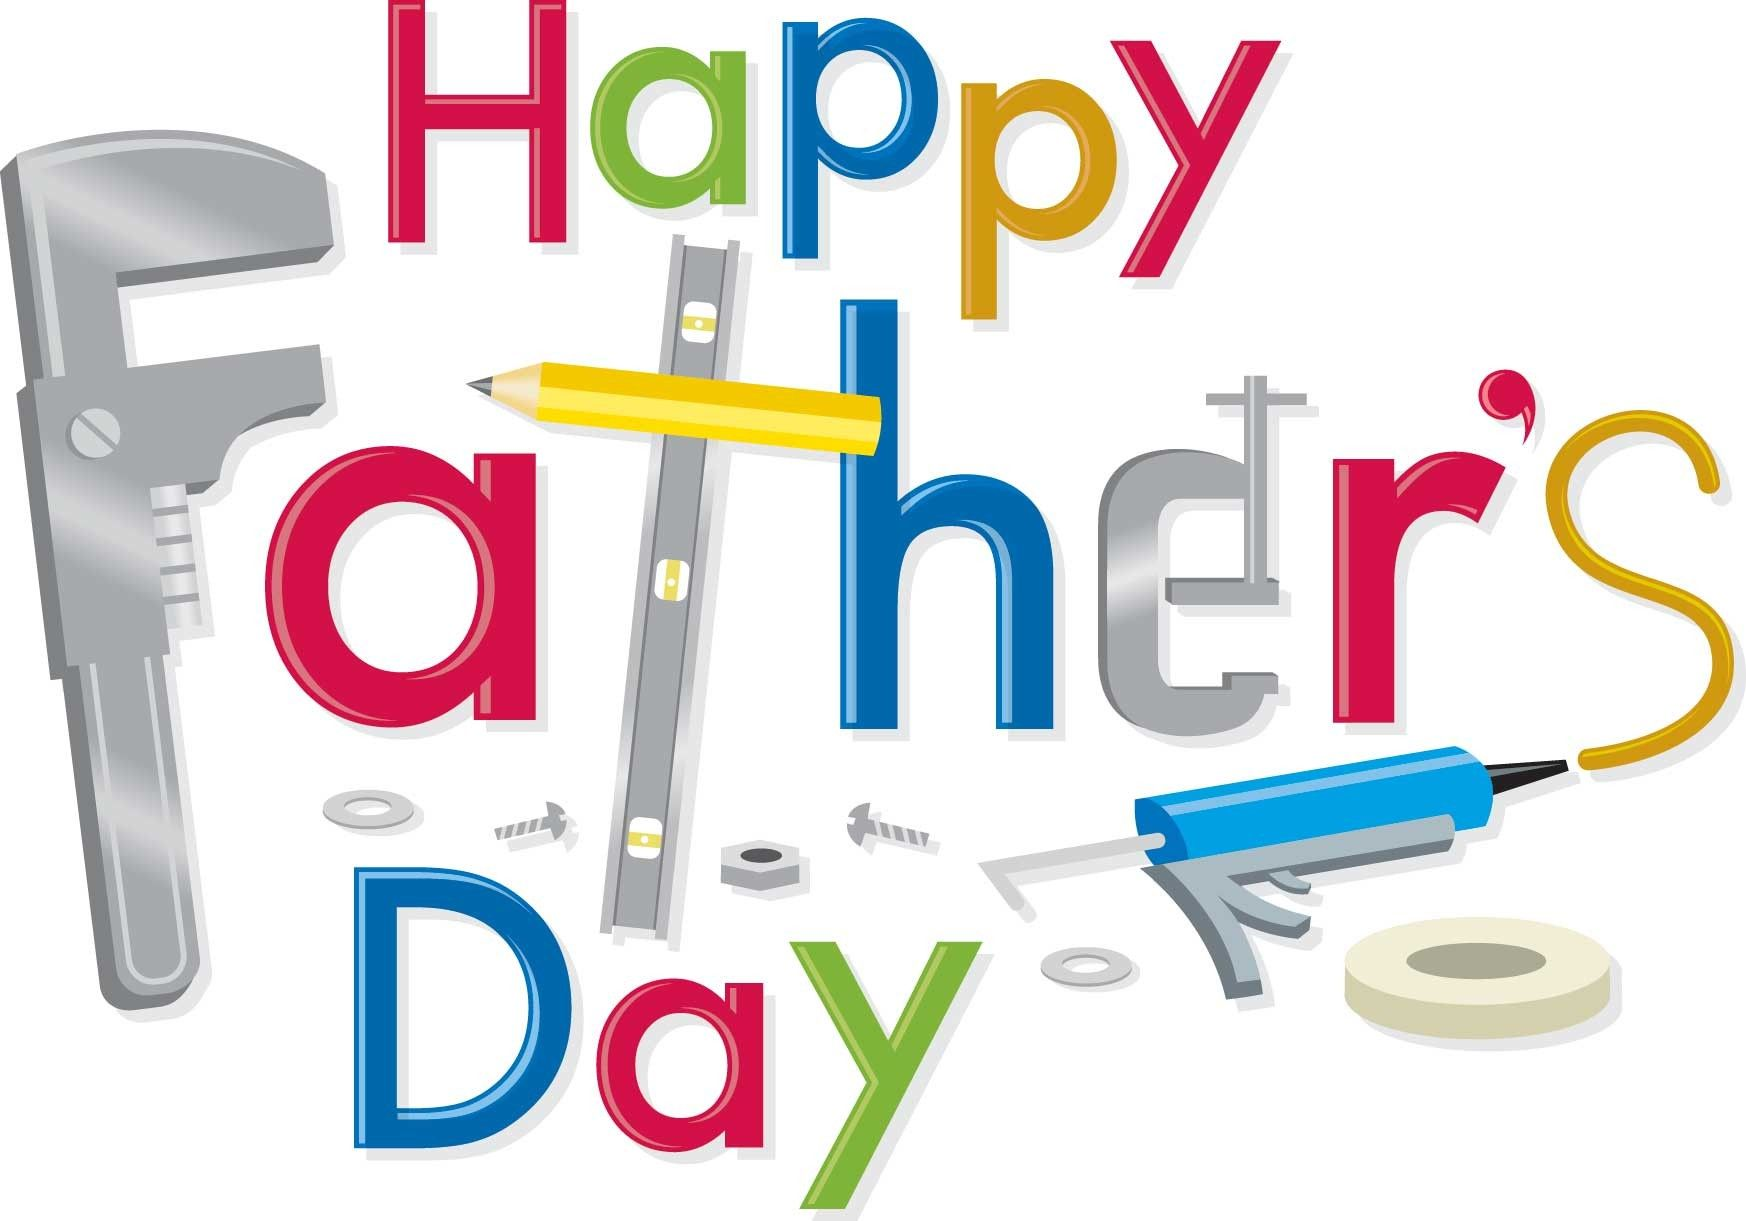 father s day clip art use these free images for your websites art rh pinterest com fathers day clip art free download free fathers day clipart images